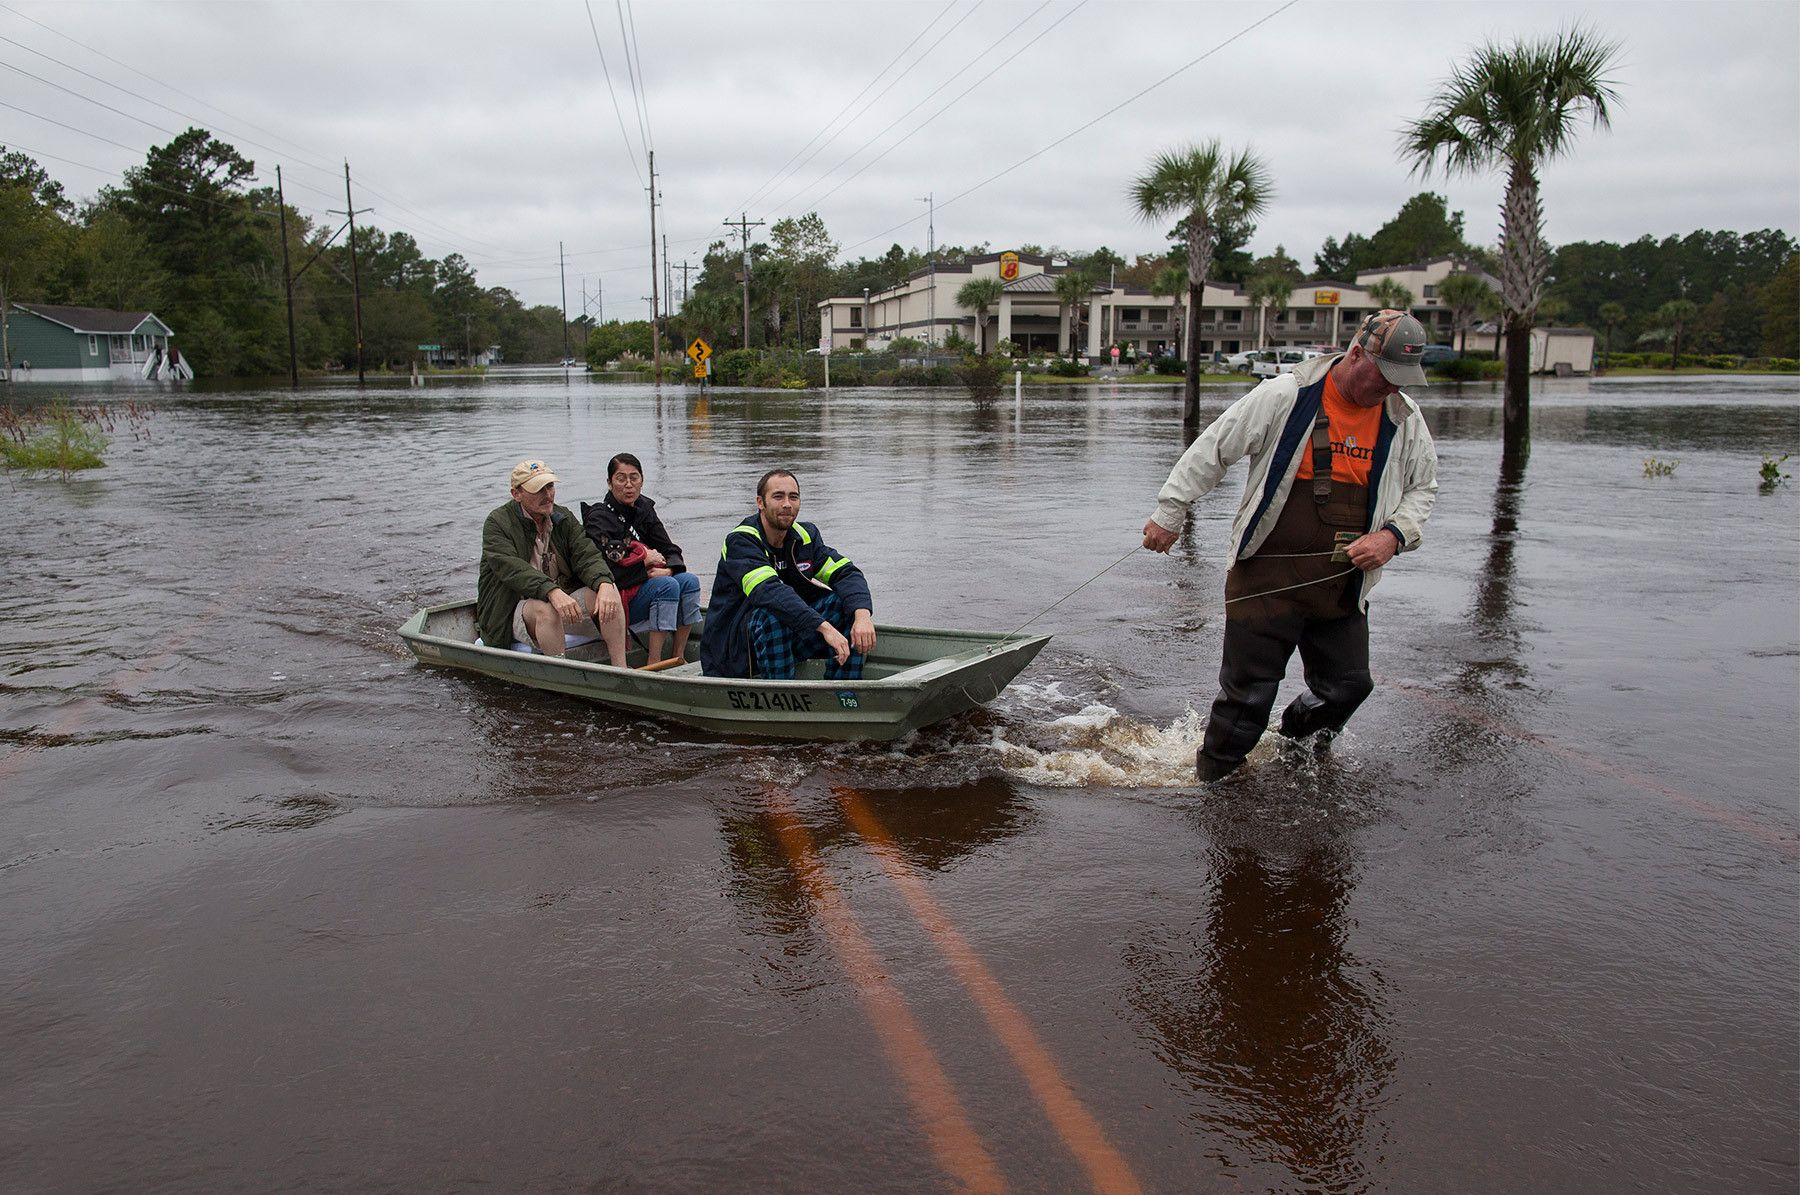 David Carroll (R) of Waccamaw Lake Drive, carries via boat, neighbors Rick Woodward, Miki Woodward and Matt Desjardins in Conway, South Carolina October 6, 2015. The Woodward family came to the landing from their flooded neighborhood to meet daughter Kelly who had been separated from them for a few days because of the floods. Floodwaters from unprecedented rainfall in South Carolina have killed 11 people, closed some 550 roads and bridges and prompted hundreds of rescues of people trapped in homes and cars, officials said on Monday. REUTERS/Randall Hill